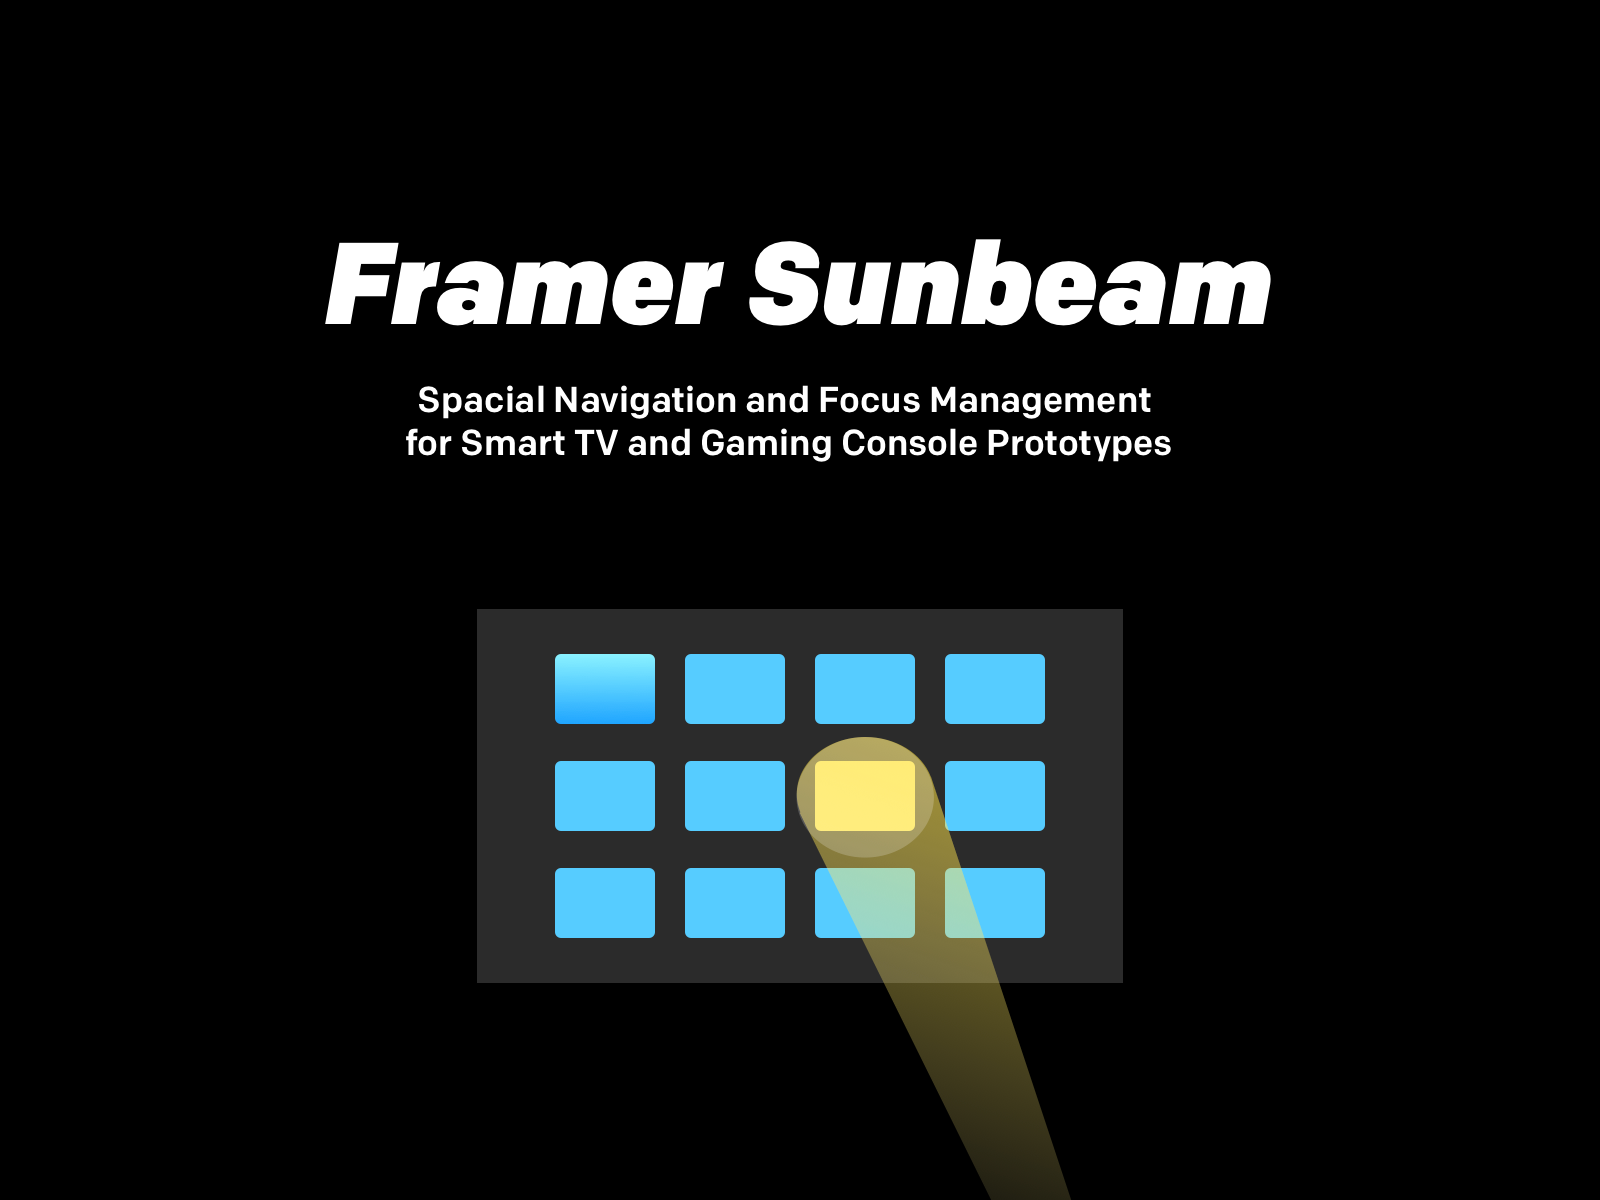 Framer Sunbeam